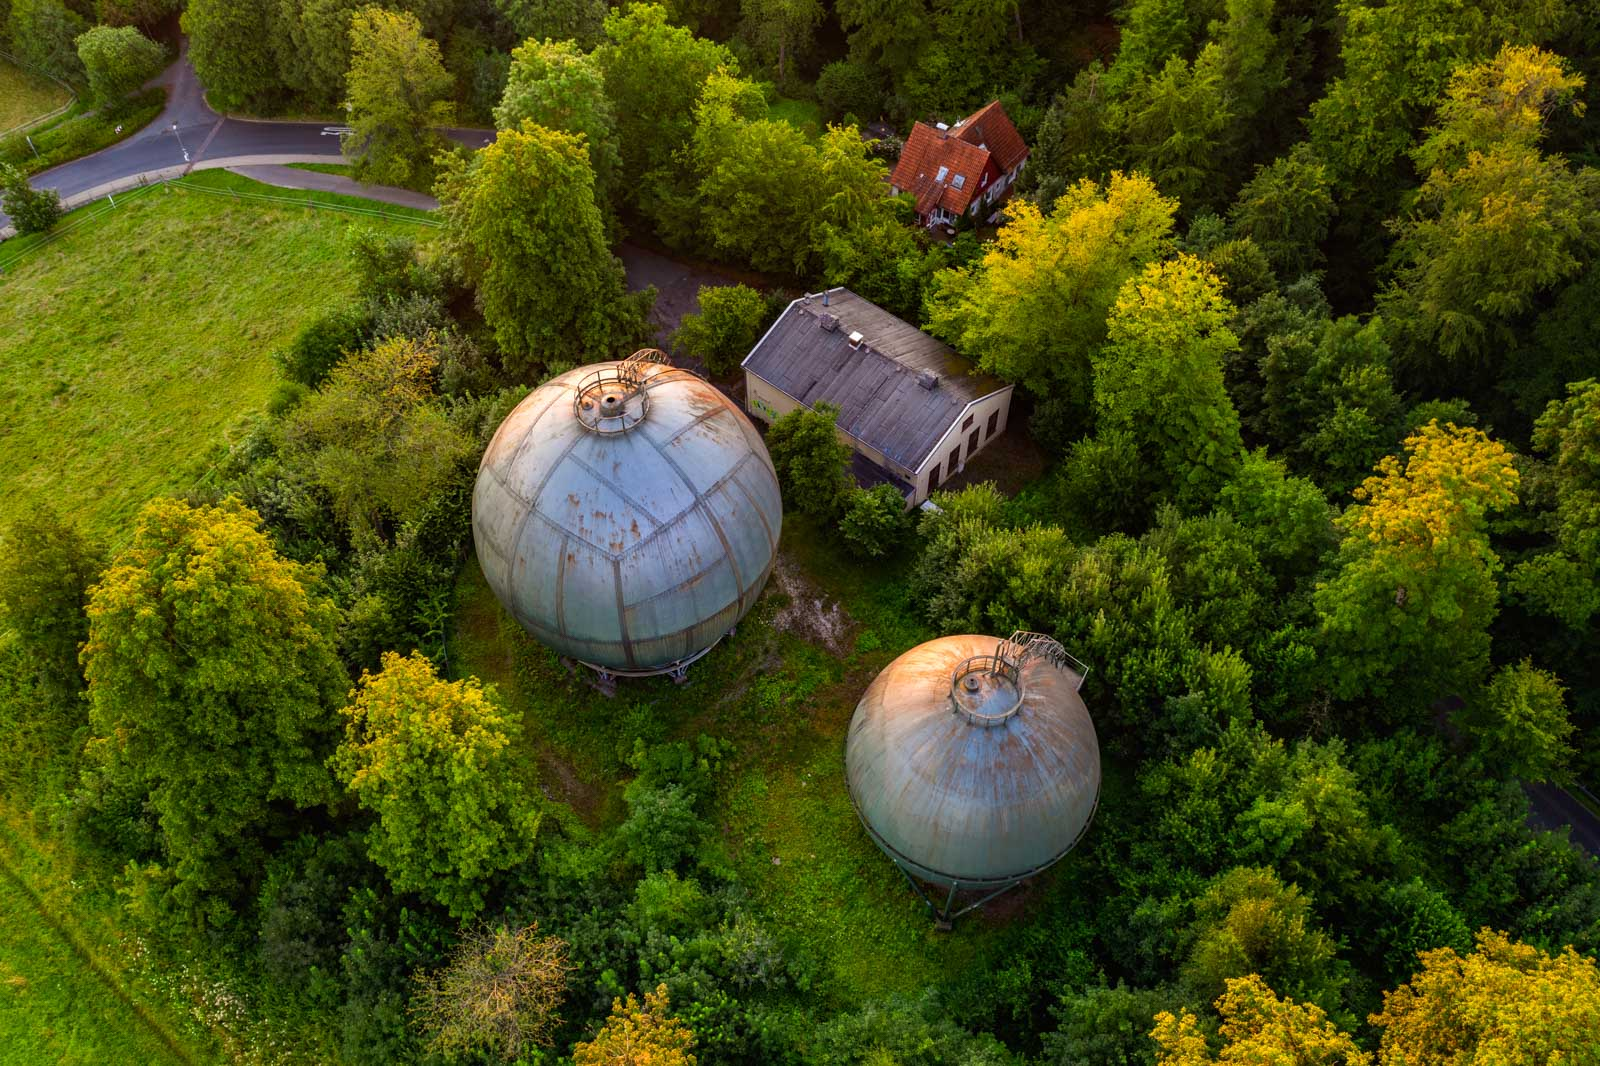 Sunrise above the old gasometers in the Teutoburg Forest (Bielefeld-Bethel, Germany).